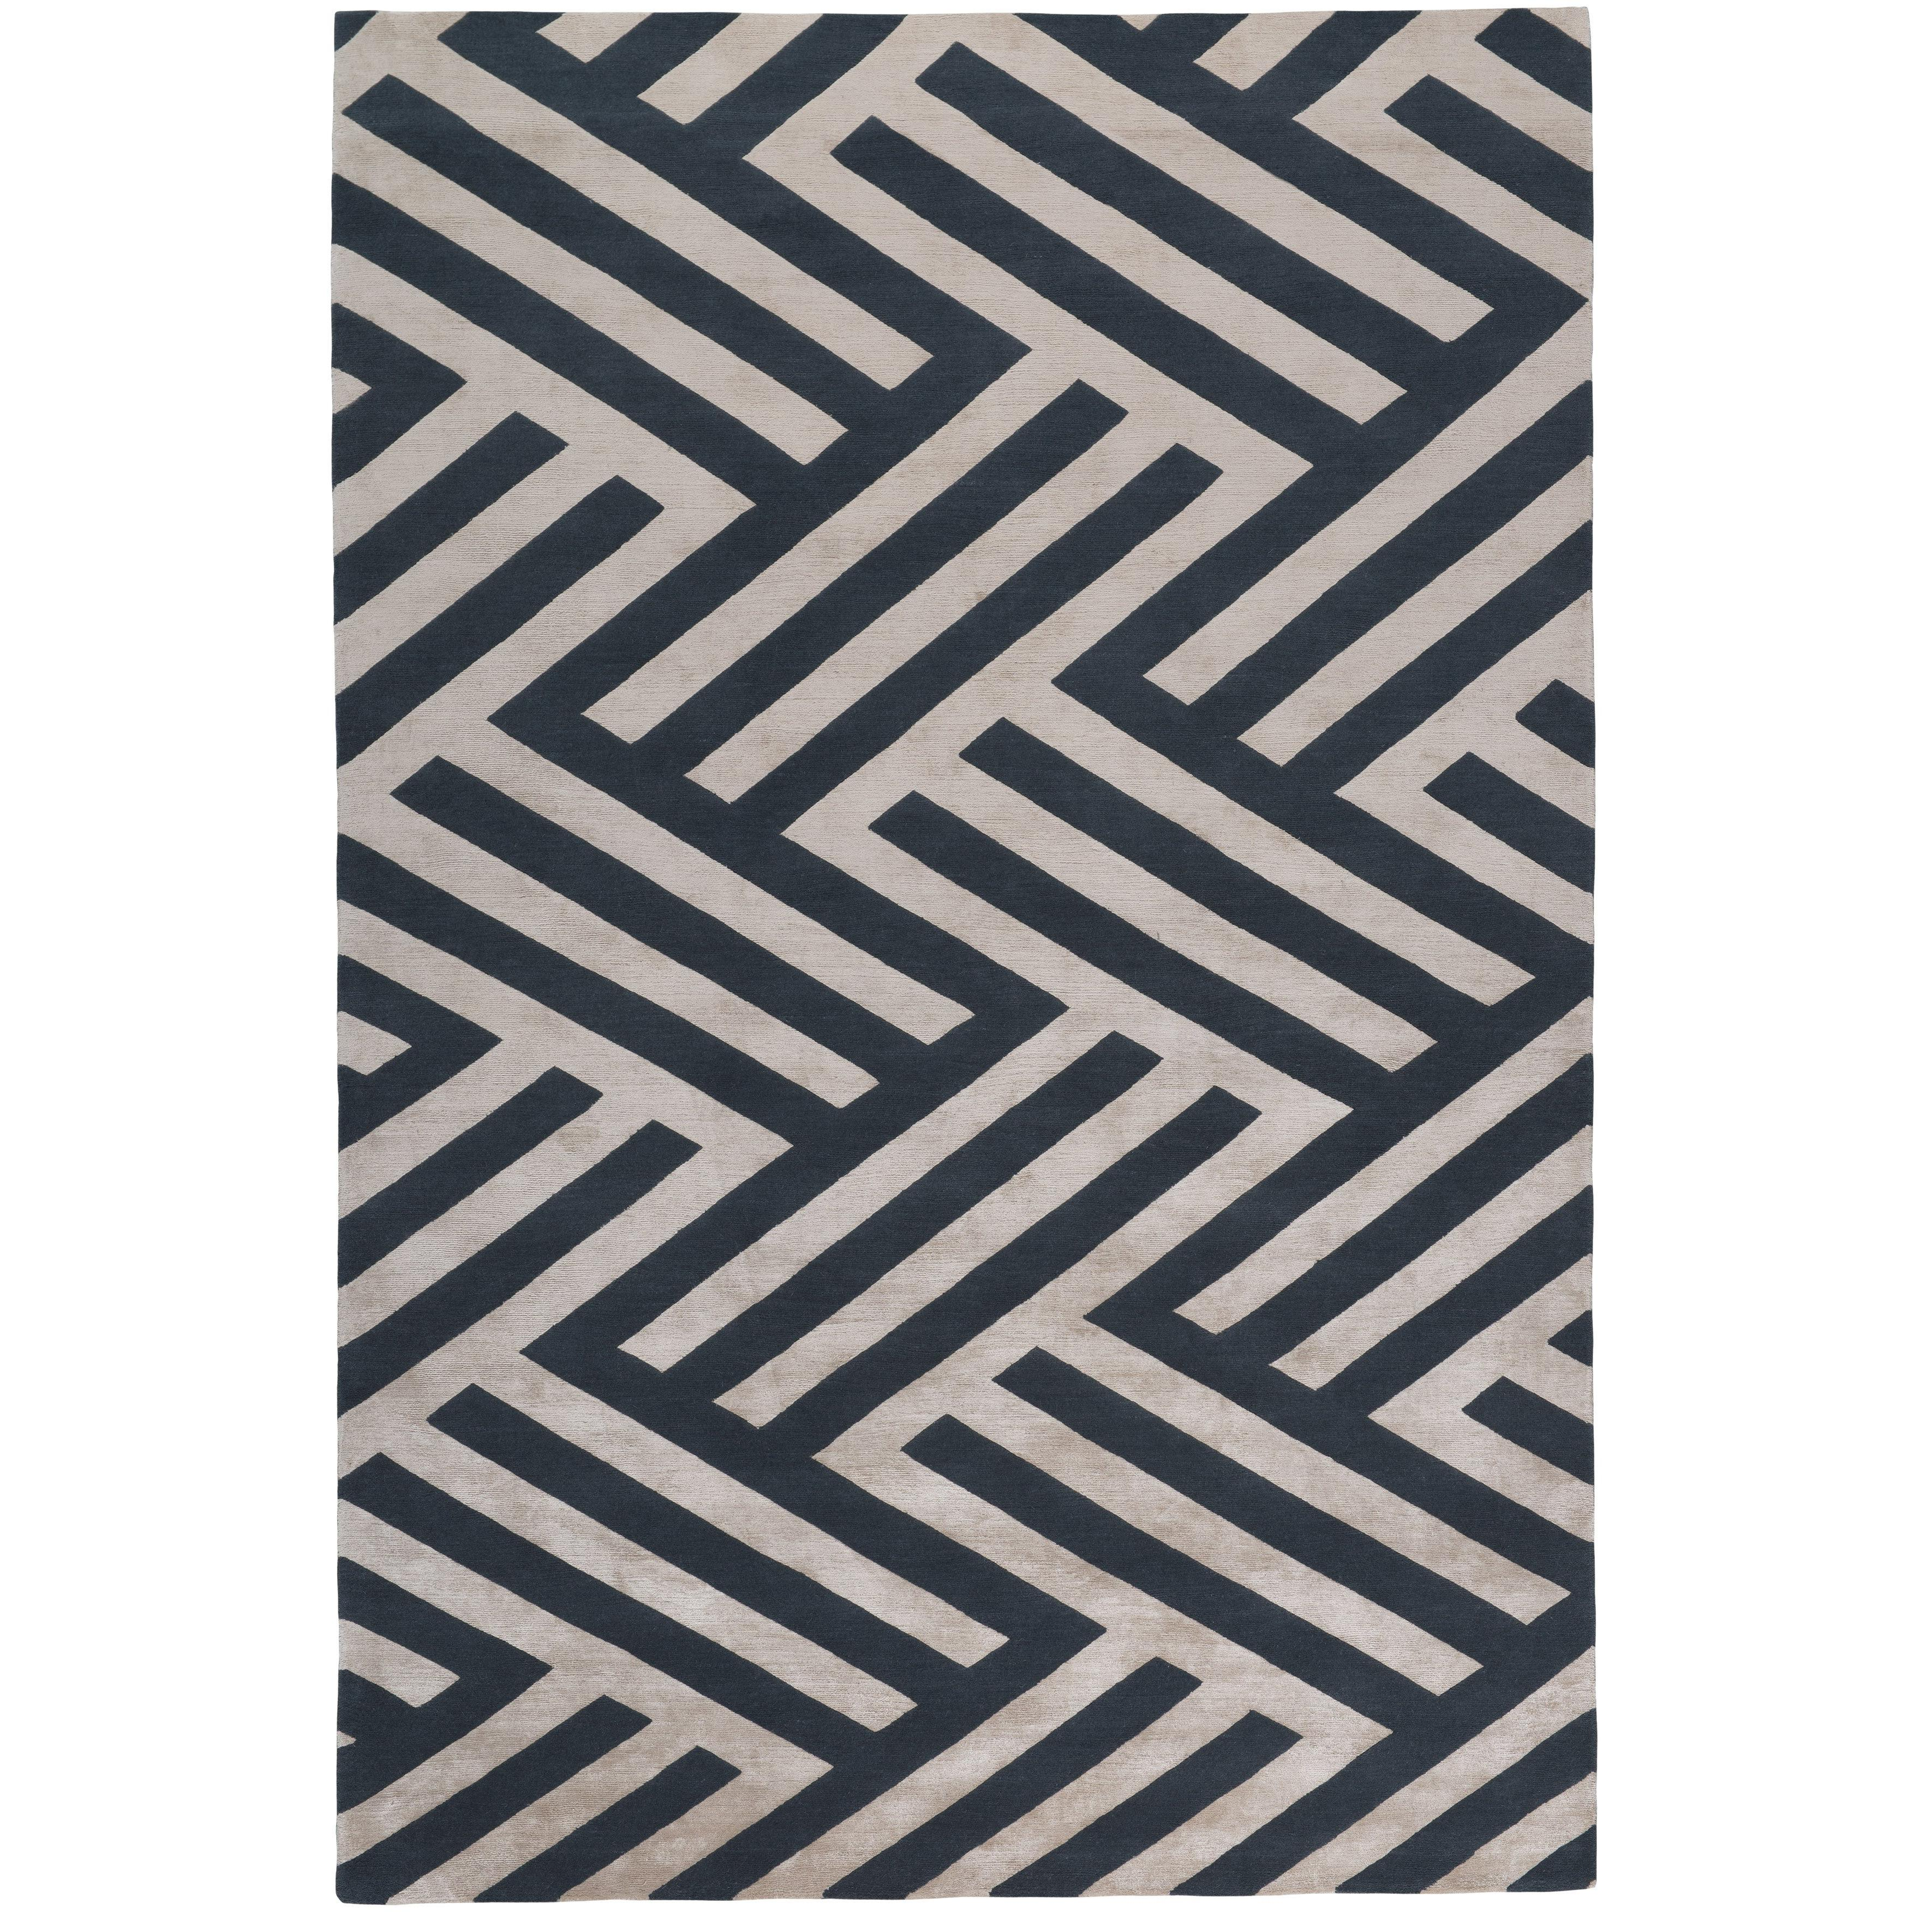 Regalia Hand Knotted 6x4 Floor Rug In Wool And Silk By Vivienne Westwood